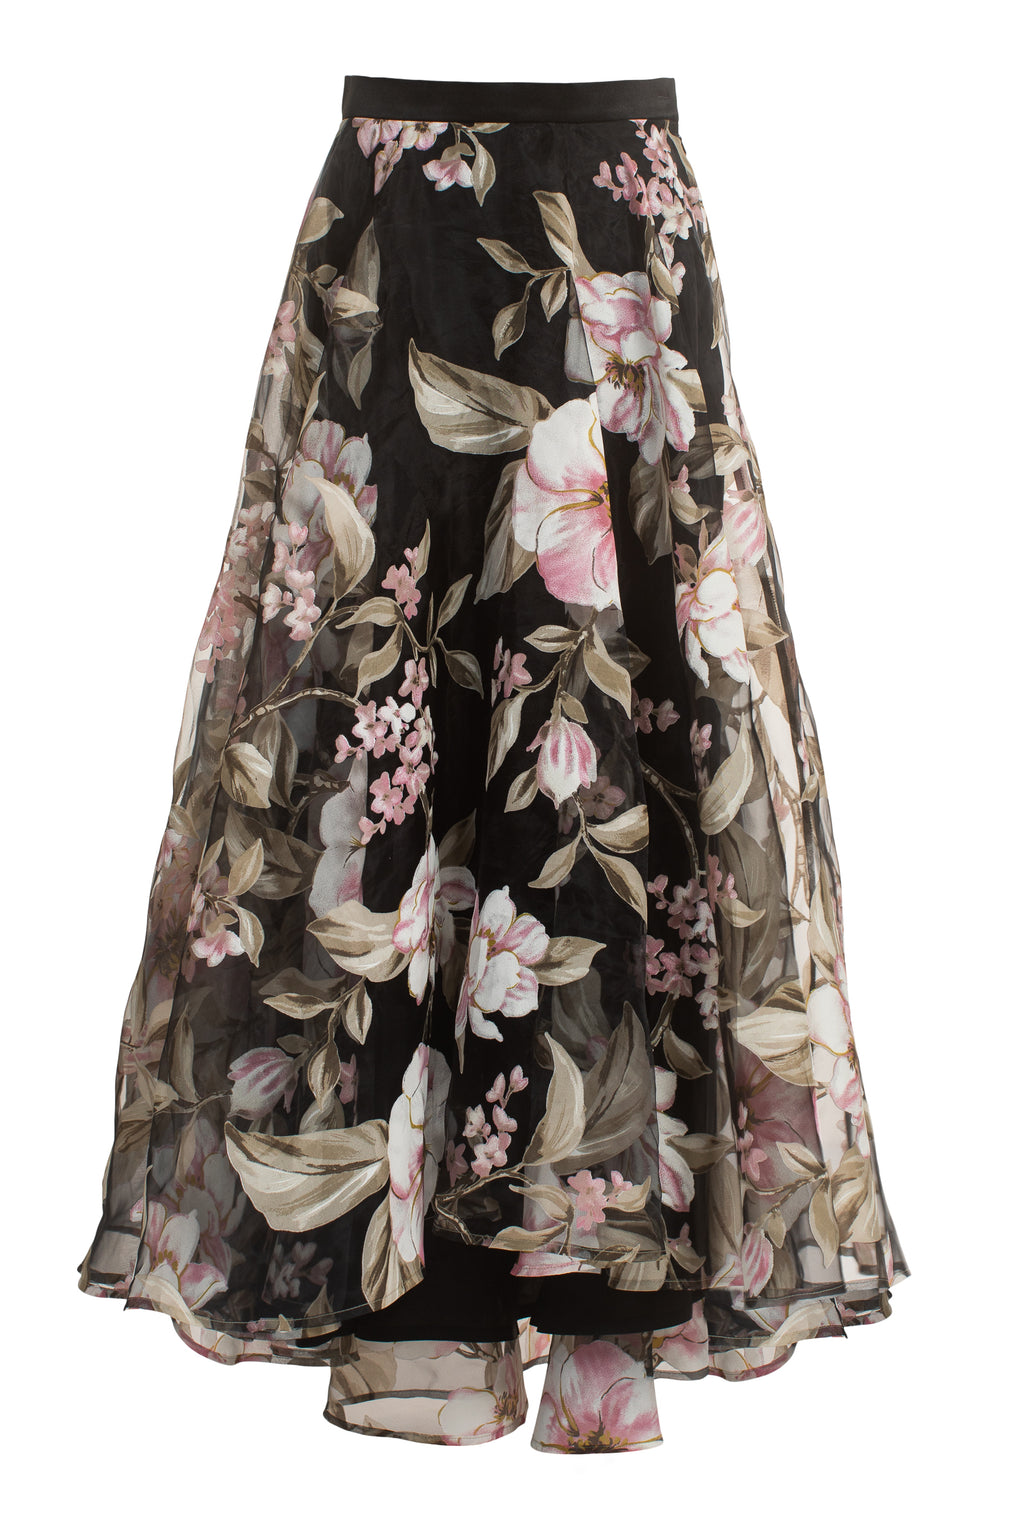 SS20 Gardenia Skirt Black Pink Flowers On Black